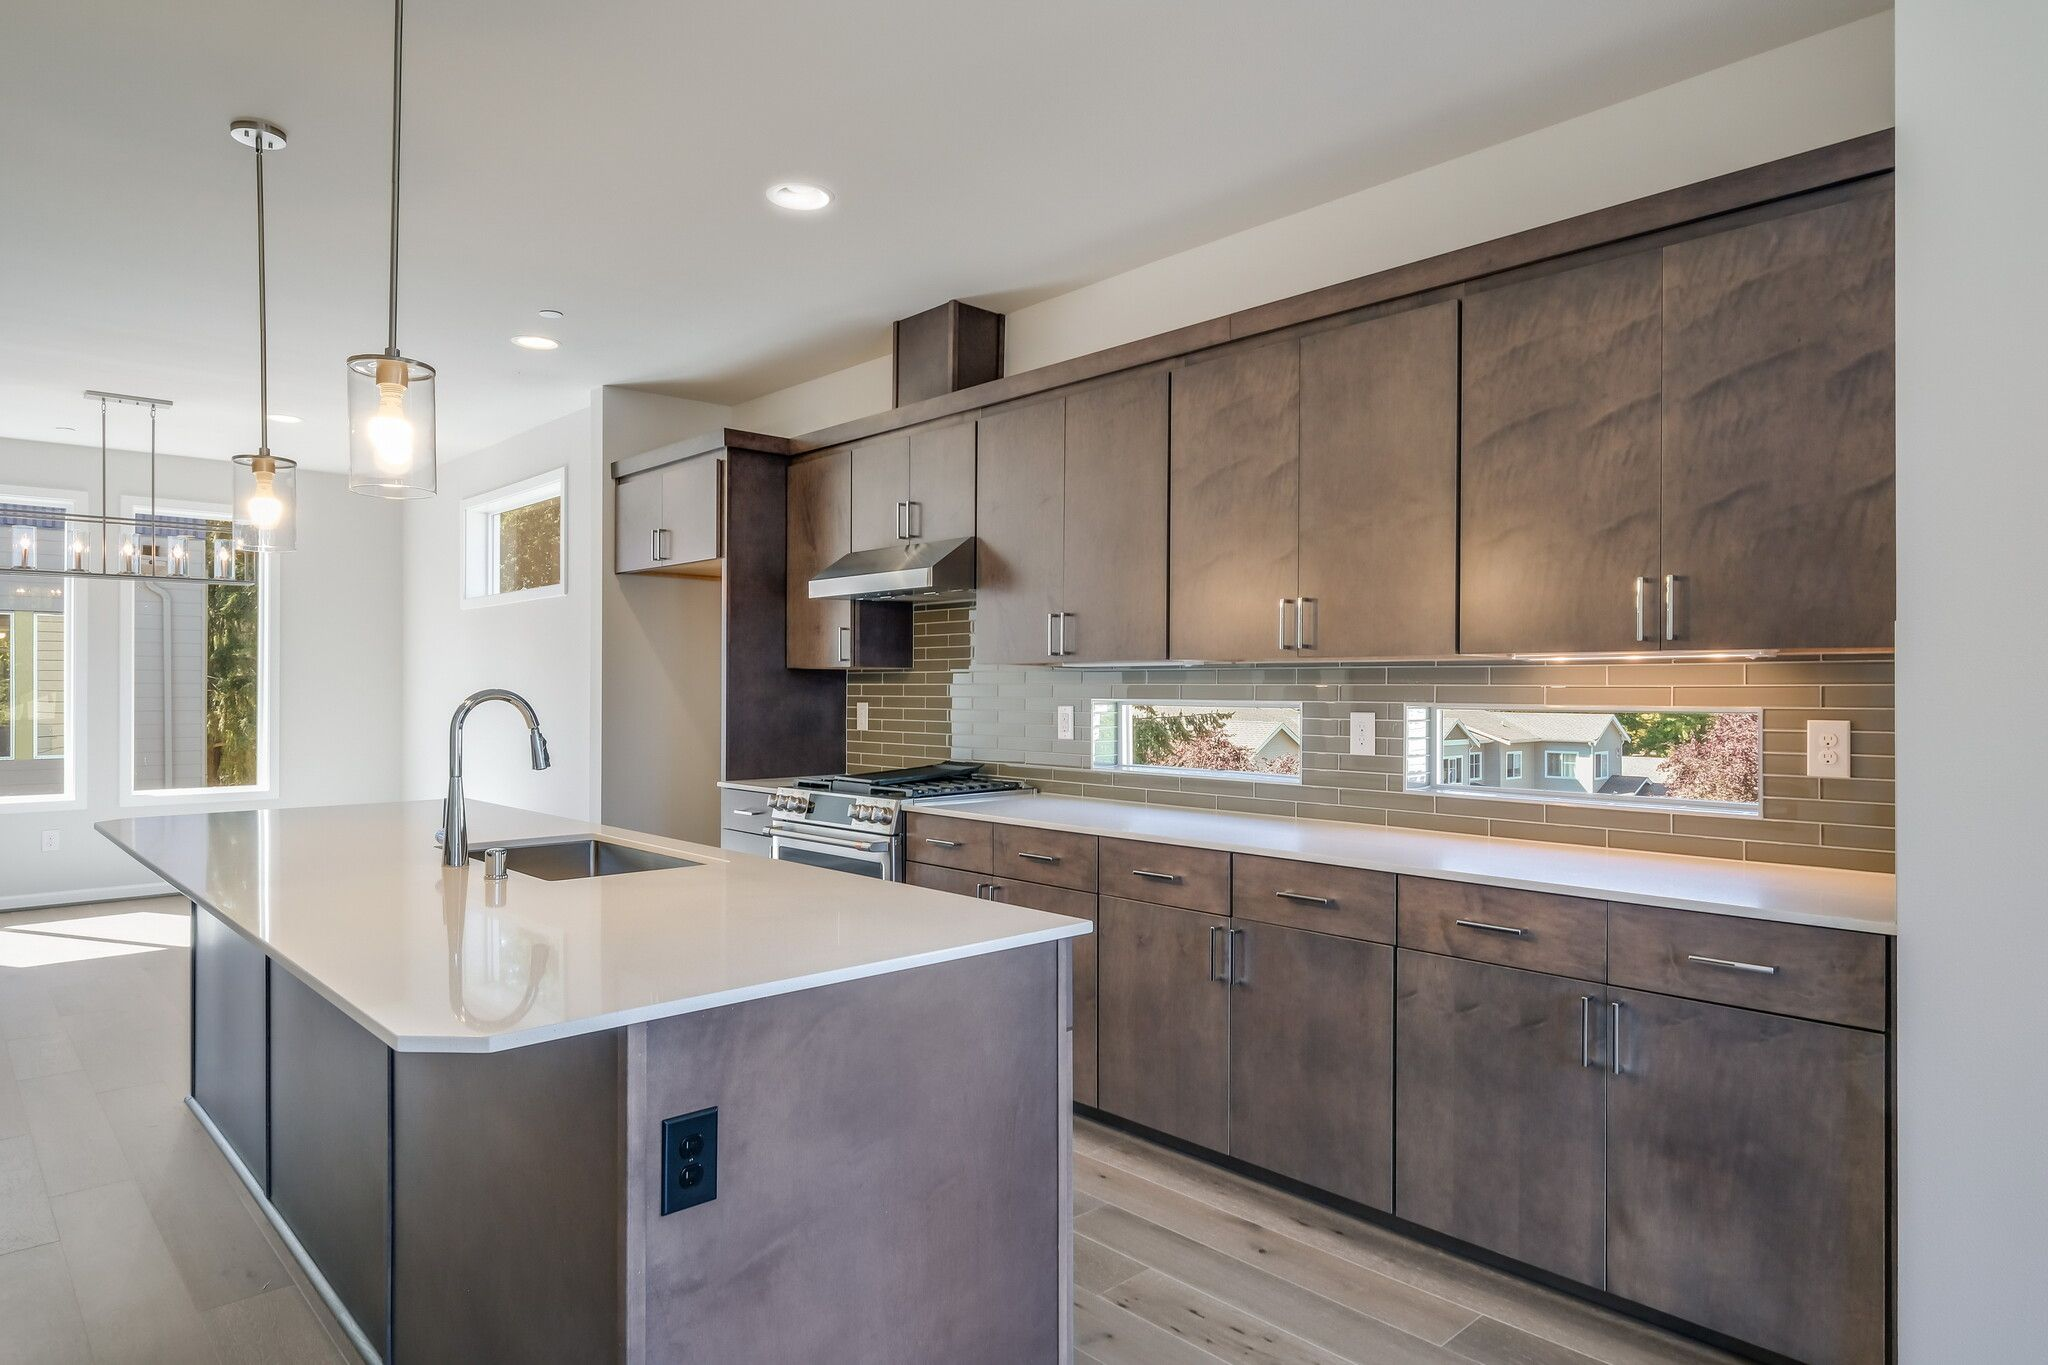 Kitchen featured in the Plan 18FExterior WLH By Taylor Morrison in Seattle-Bellevue, WA